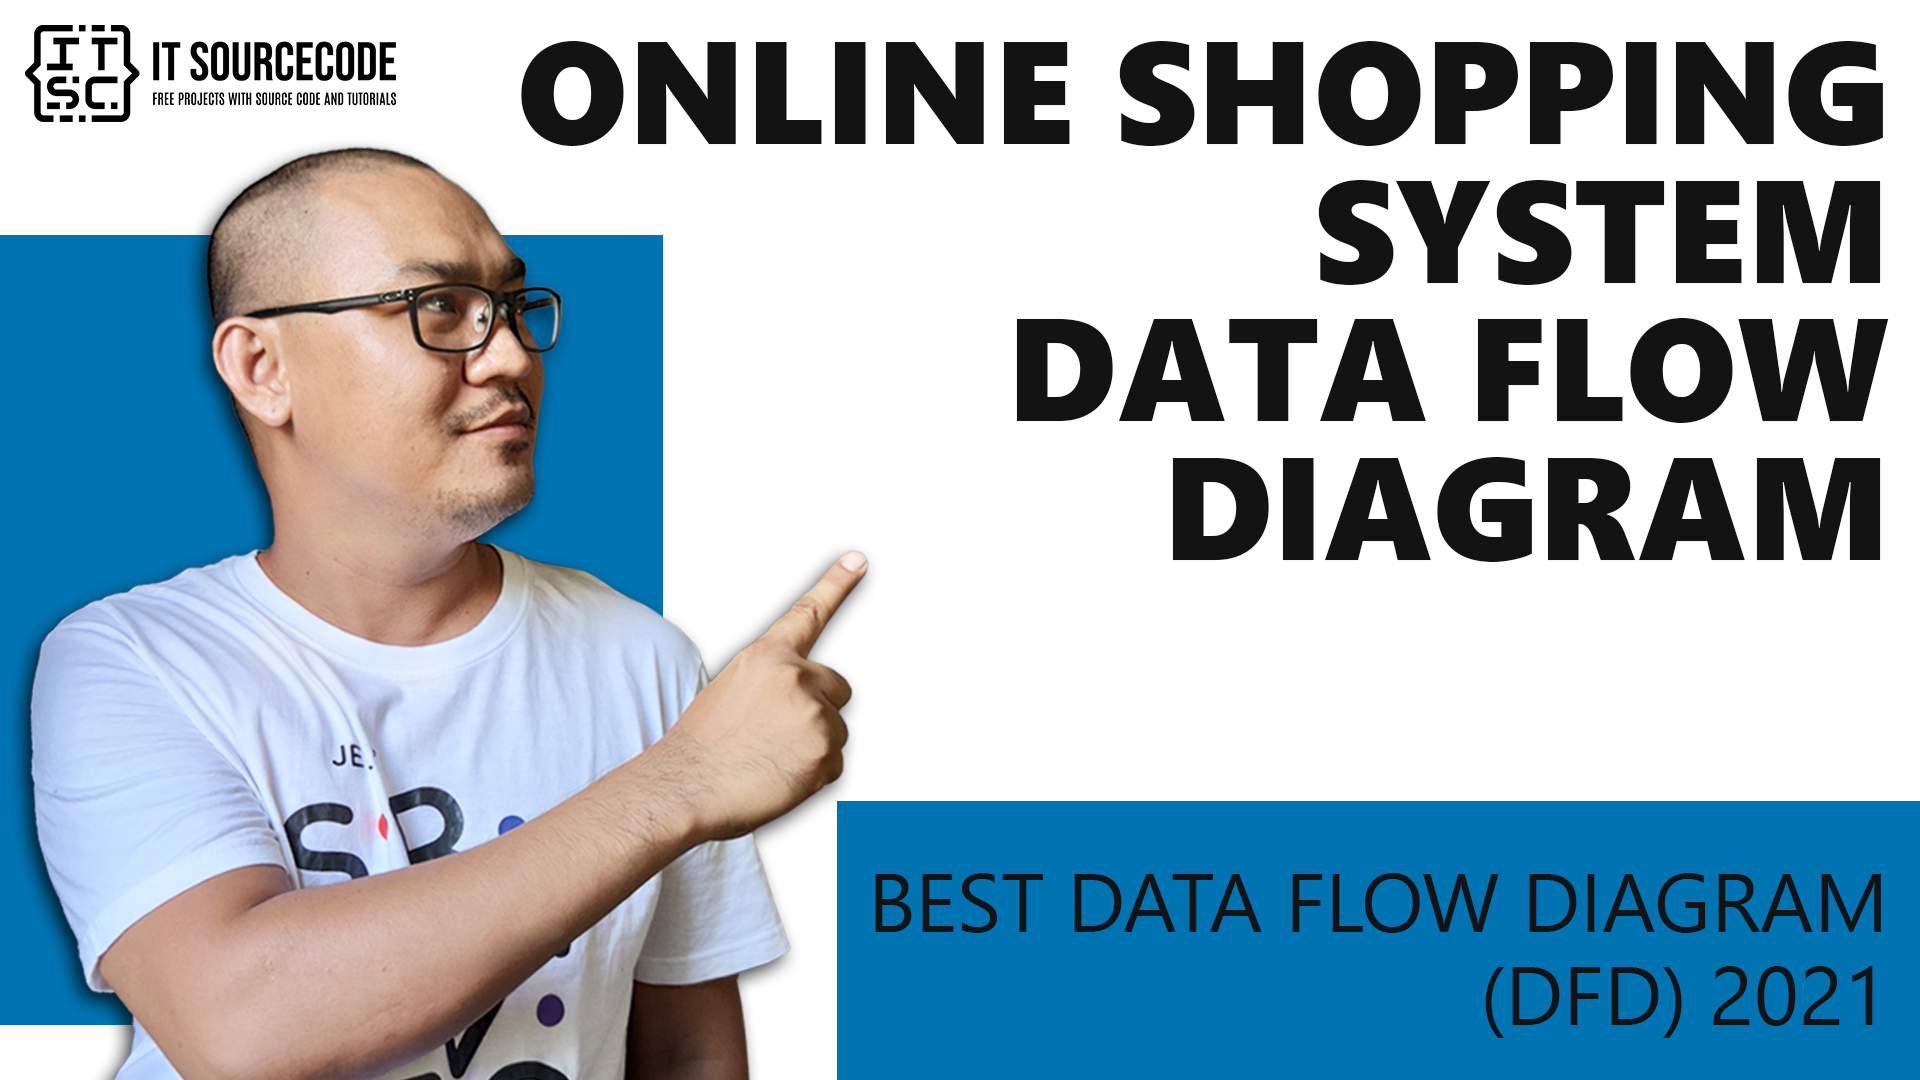 Online-Shopping-System-DFD